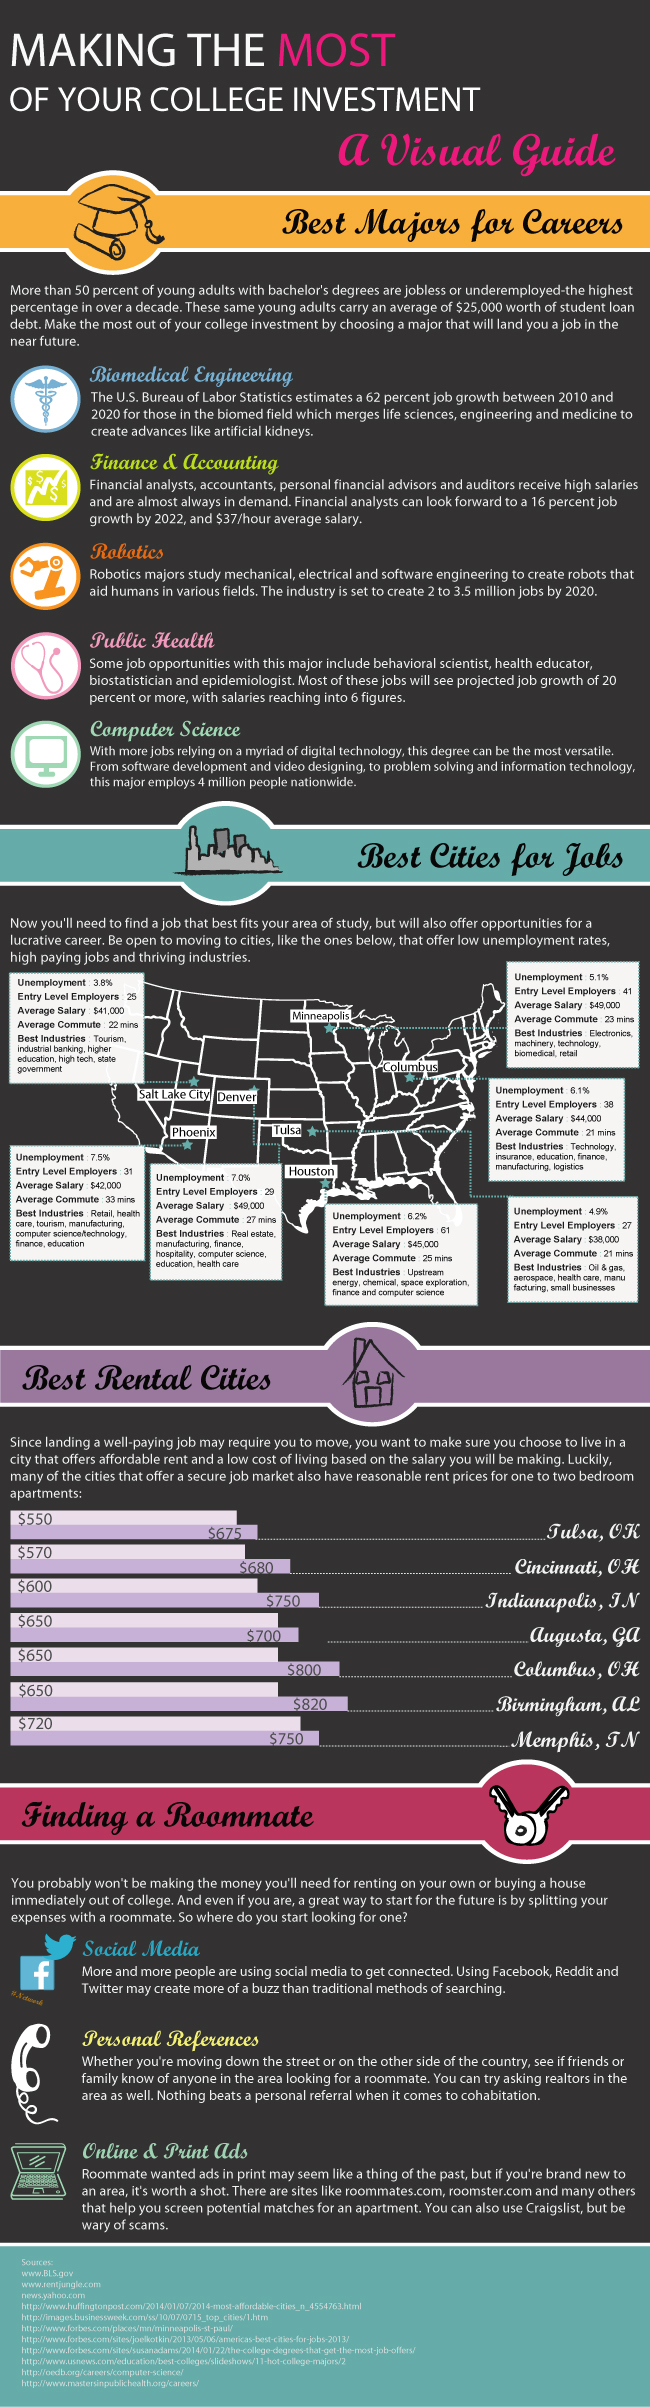 best college majors jobs and cities to live in for recent college grads - Best Jobs For Recent College Graduates